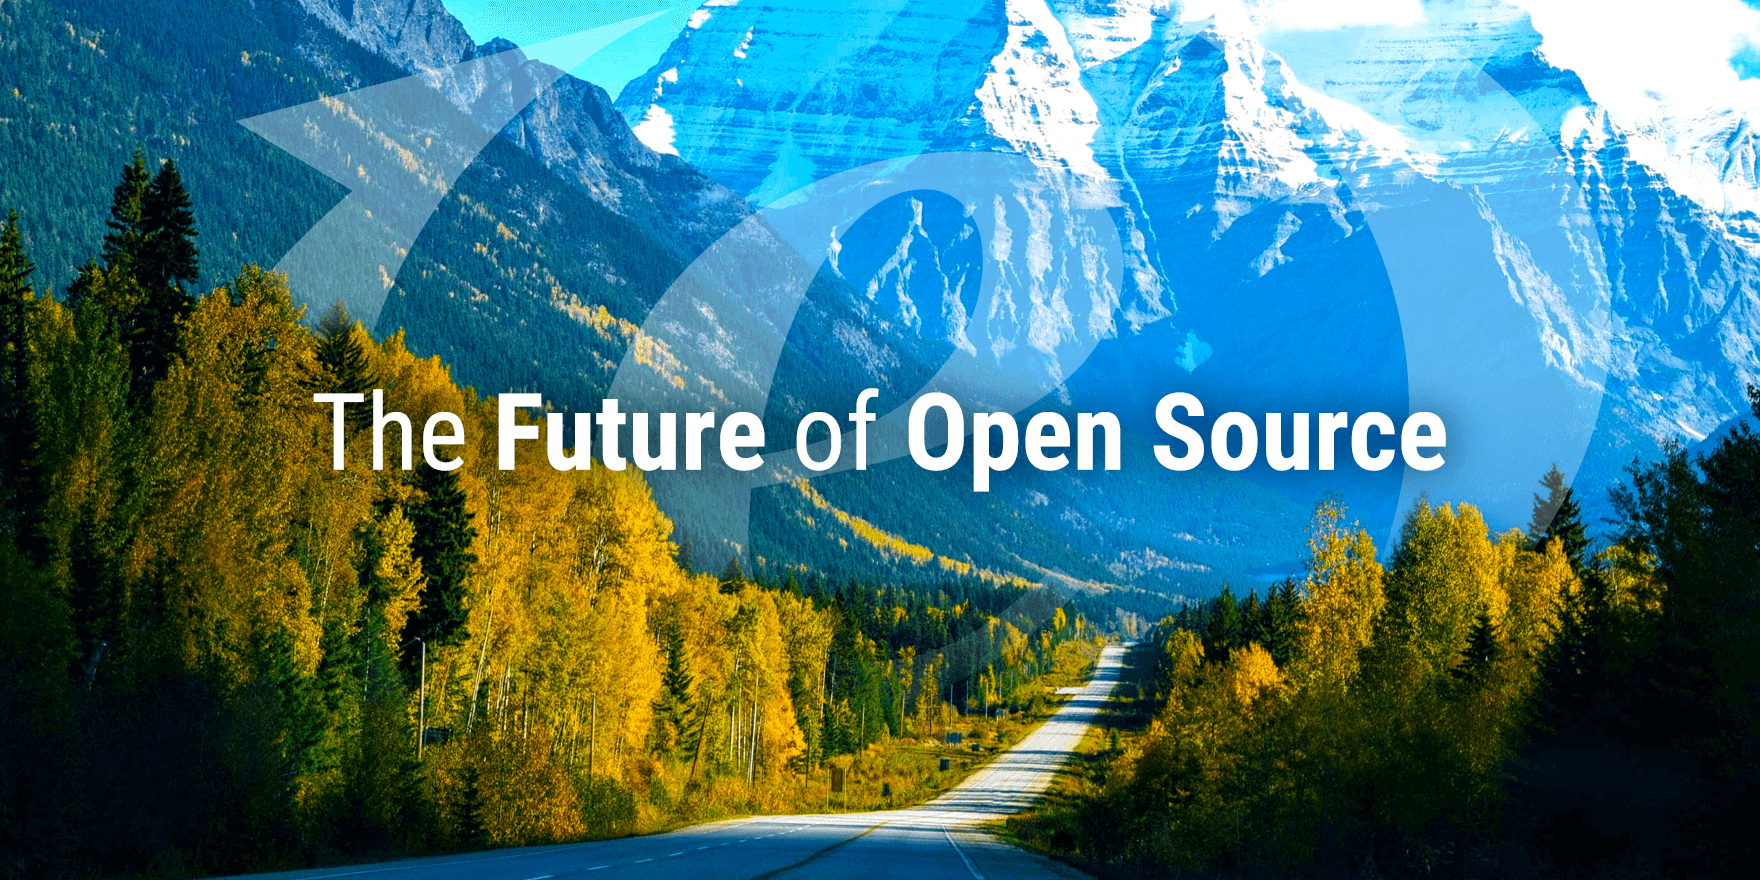 ExpressionEngine: the Future of Open Source